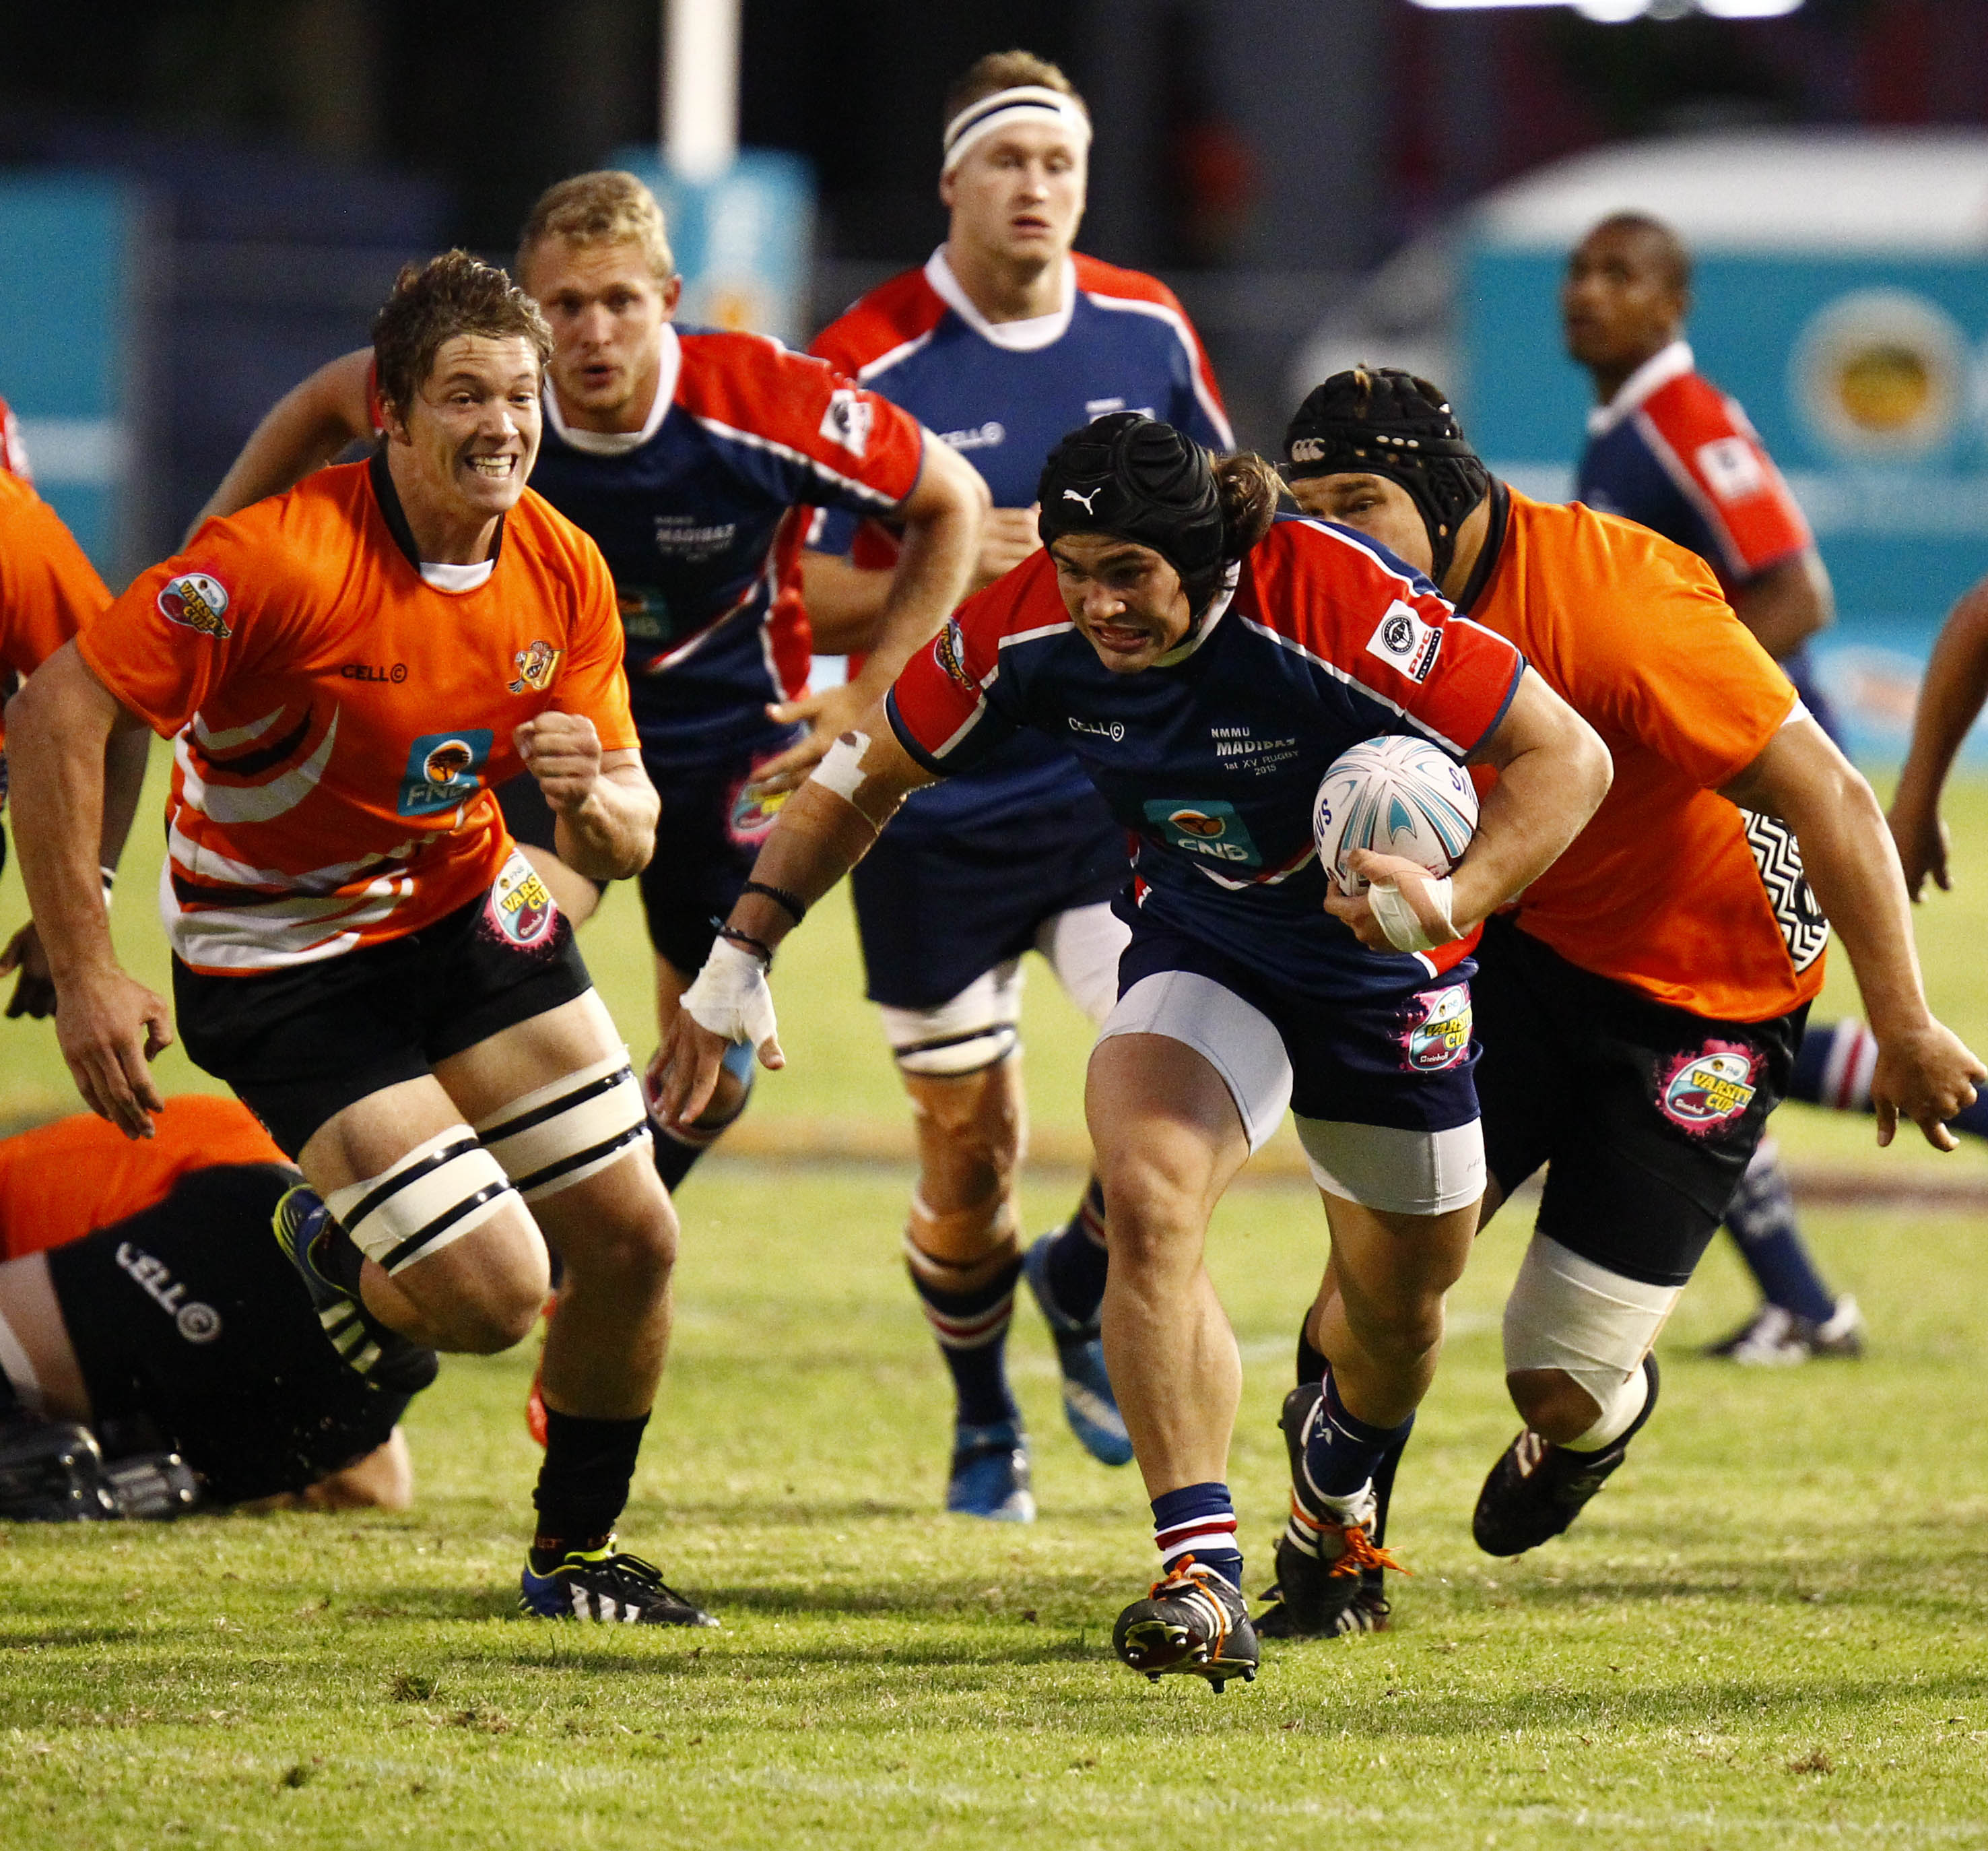 Madibaz vice-captain CJ Velleman will be winging his way to Argentina this week for the Junior Springboks' warm-up tour. The open-side flanker is aiming to earn a permanent place in the squad ahead of the World Rugby U20 Championship in Italy in June. Photo: Saspa